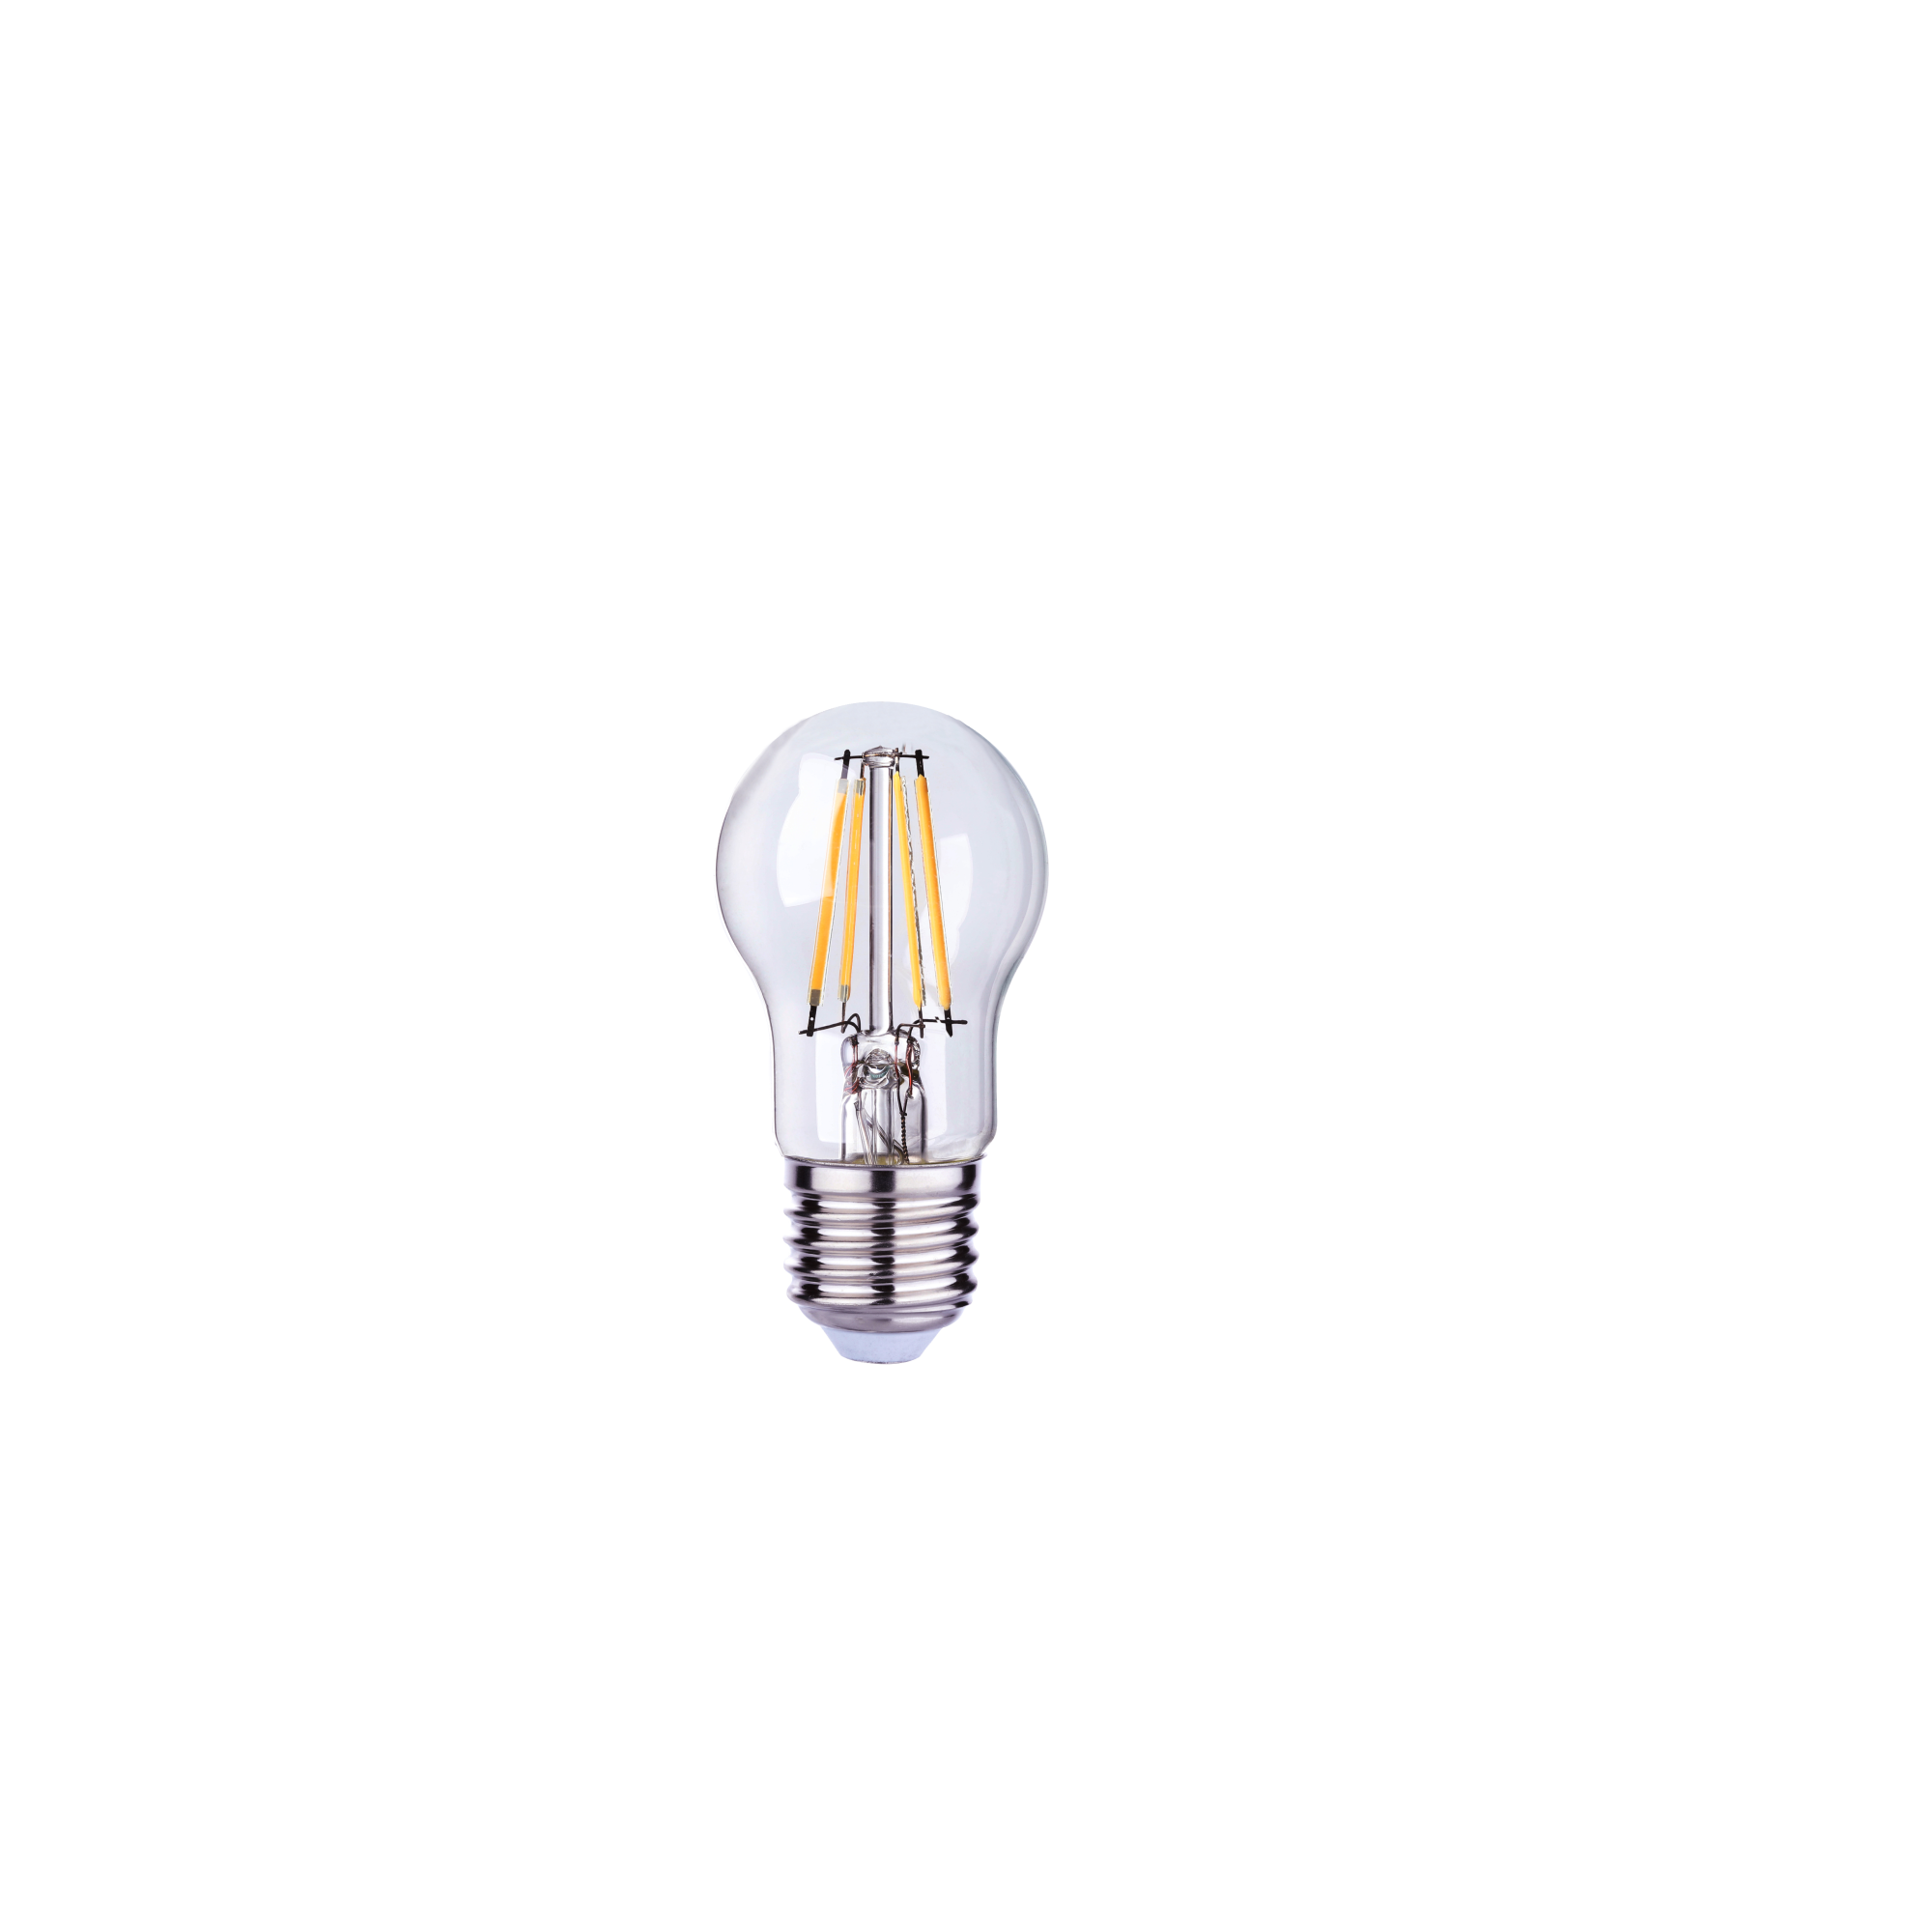 Https Rittal 5050157 Ts Deur 800x1400 Ral7035 Attractive Lighting Circuit Using 40 Led39s Image 151473